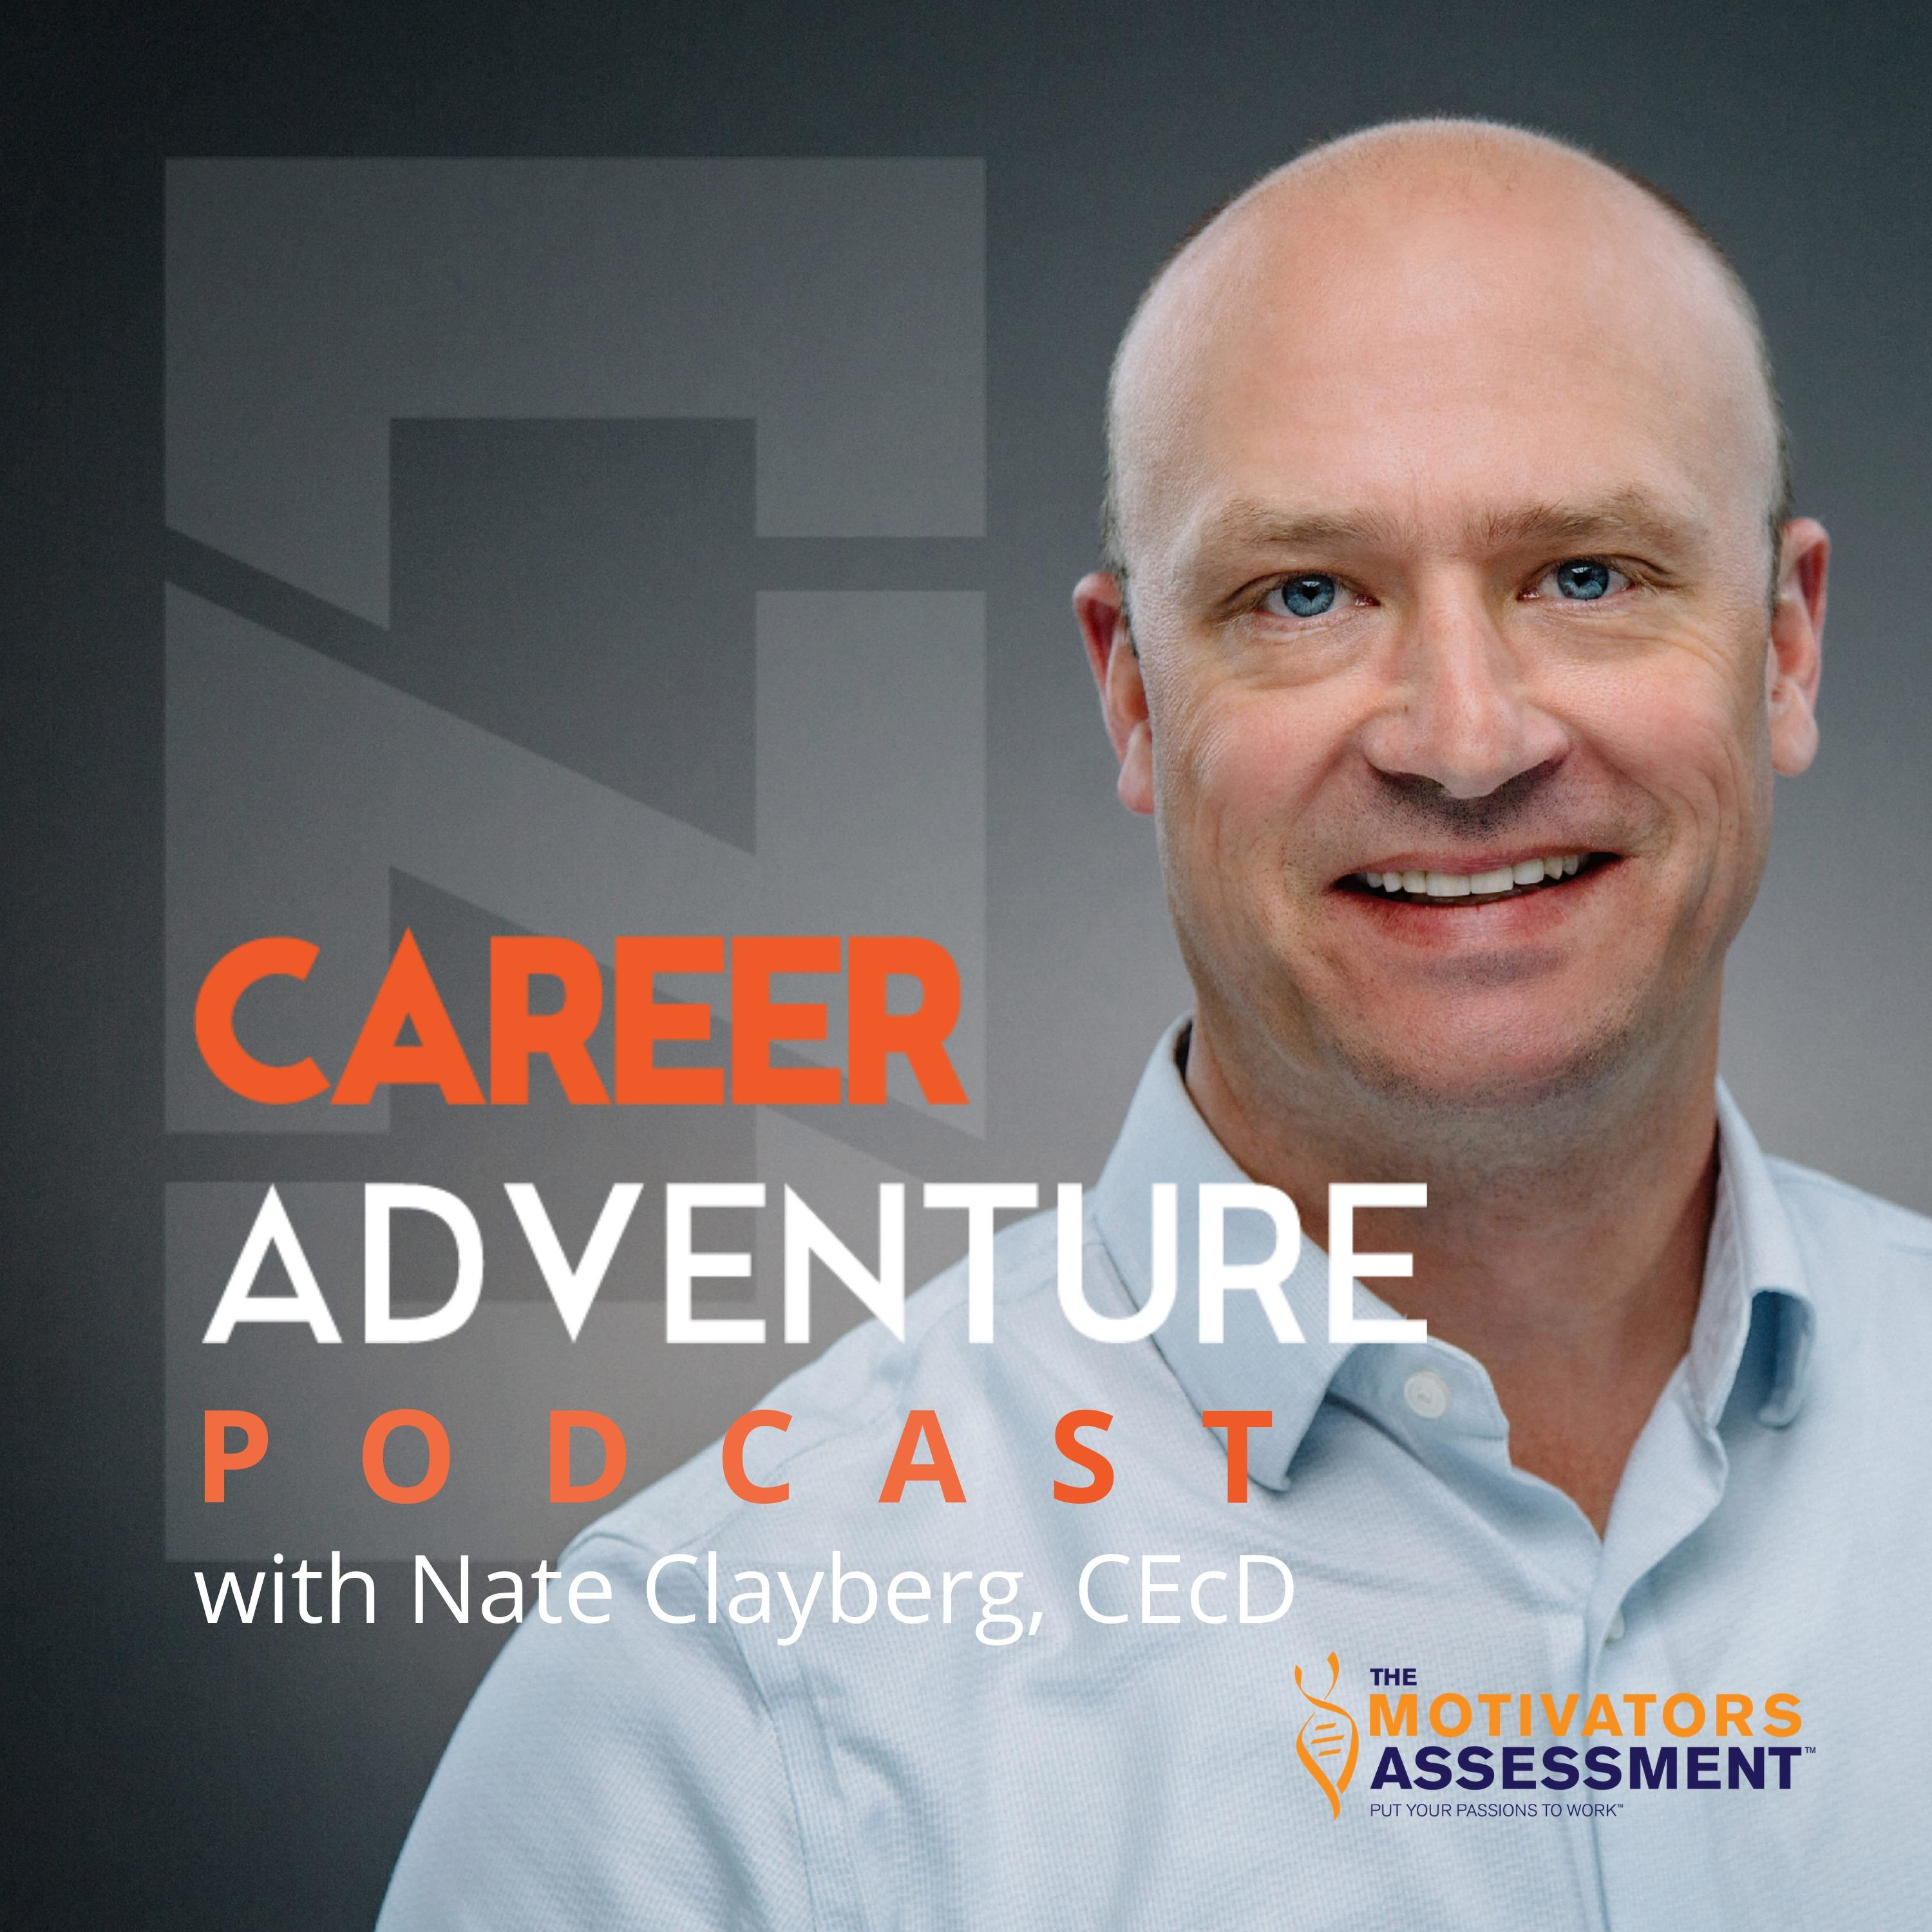 CA 000 - The Unofficial 1st Episode of the Career Adventure Podcast